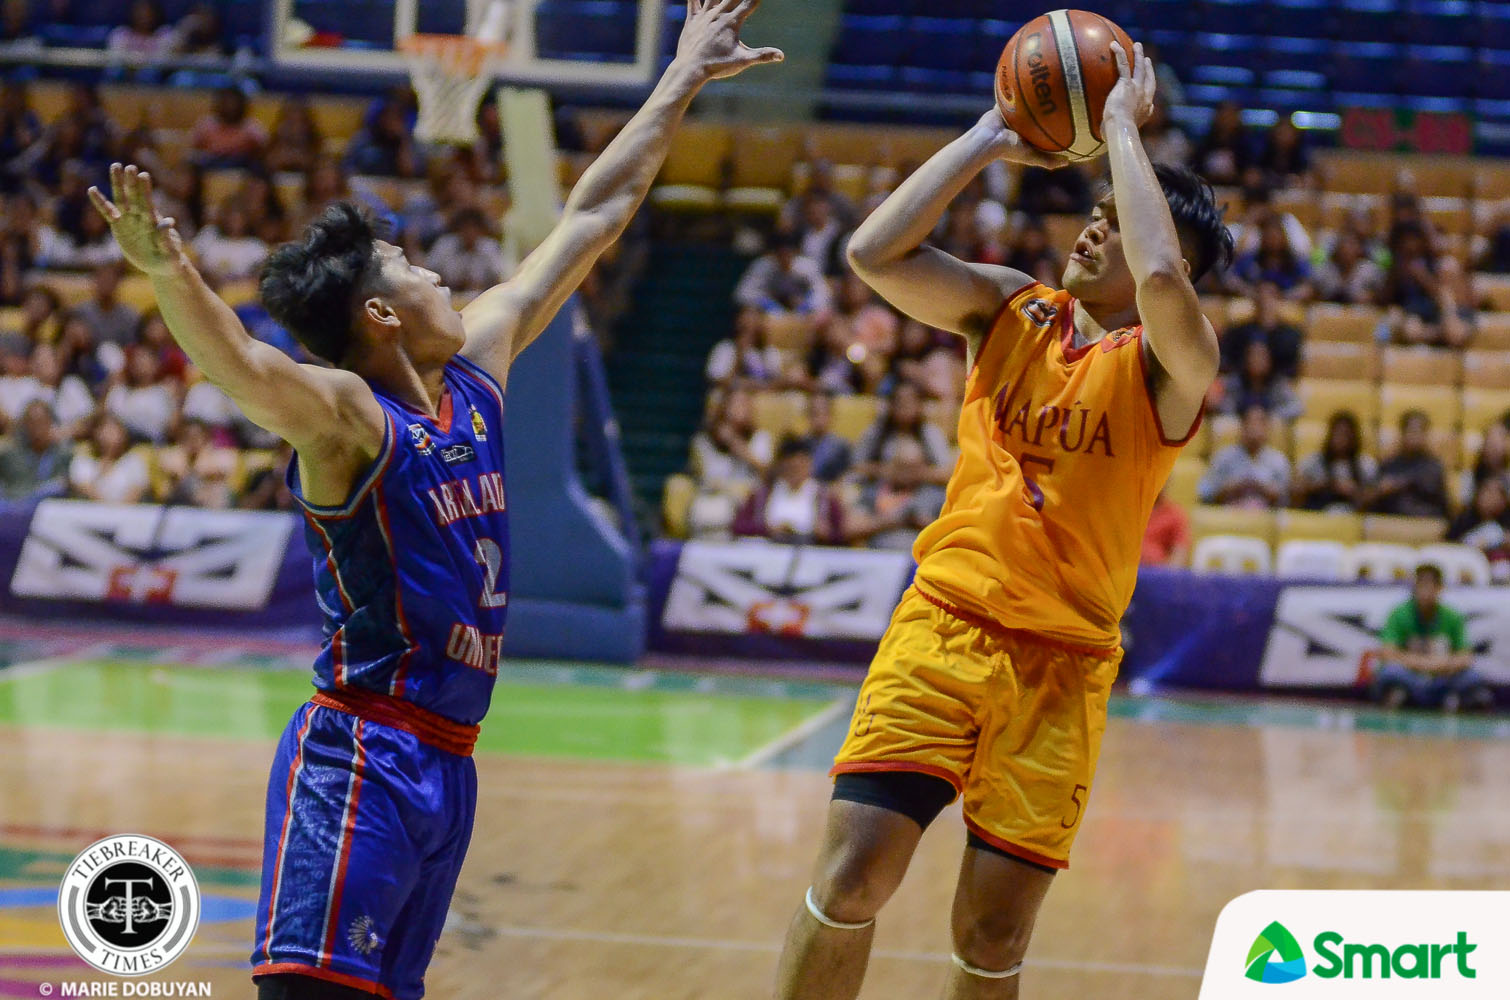 Tiebreaker Times Laurenz Victoria pours career-high against Arellano, lifts Mapua to first win AU Basketball MIT NCAA News  Rence Alcoriza Randy Alcantara Paolo Hernandez NCAA Season 95 Seniors Basketball NCAA Season 95 Mapua Seniors Basketball Laurenz Victoria Kent Salado Dariel Bayla Cholo Martin Arellano Seniors Basketball Archie Concepcion